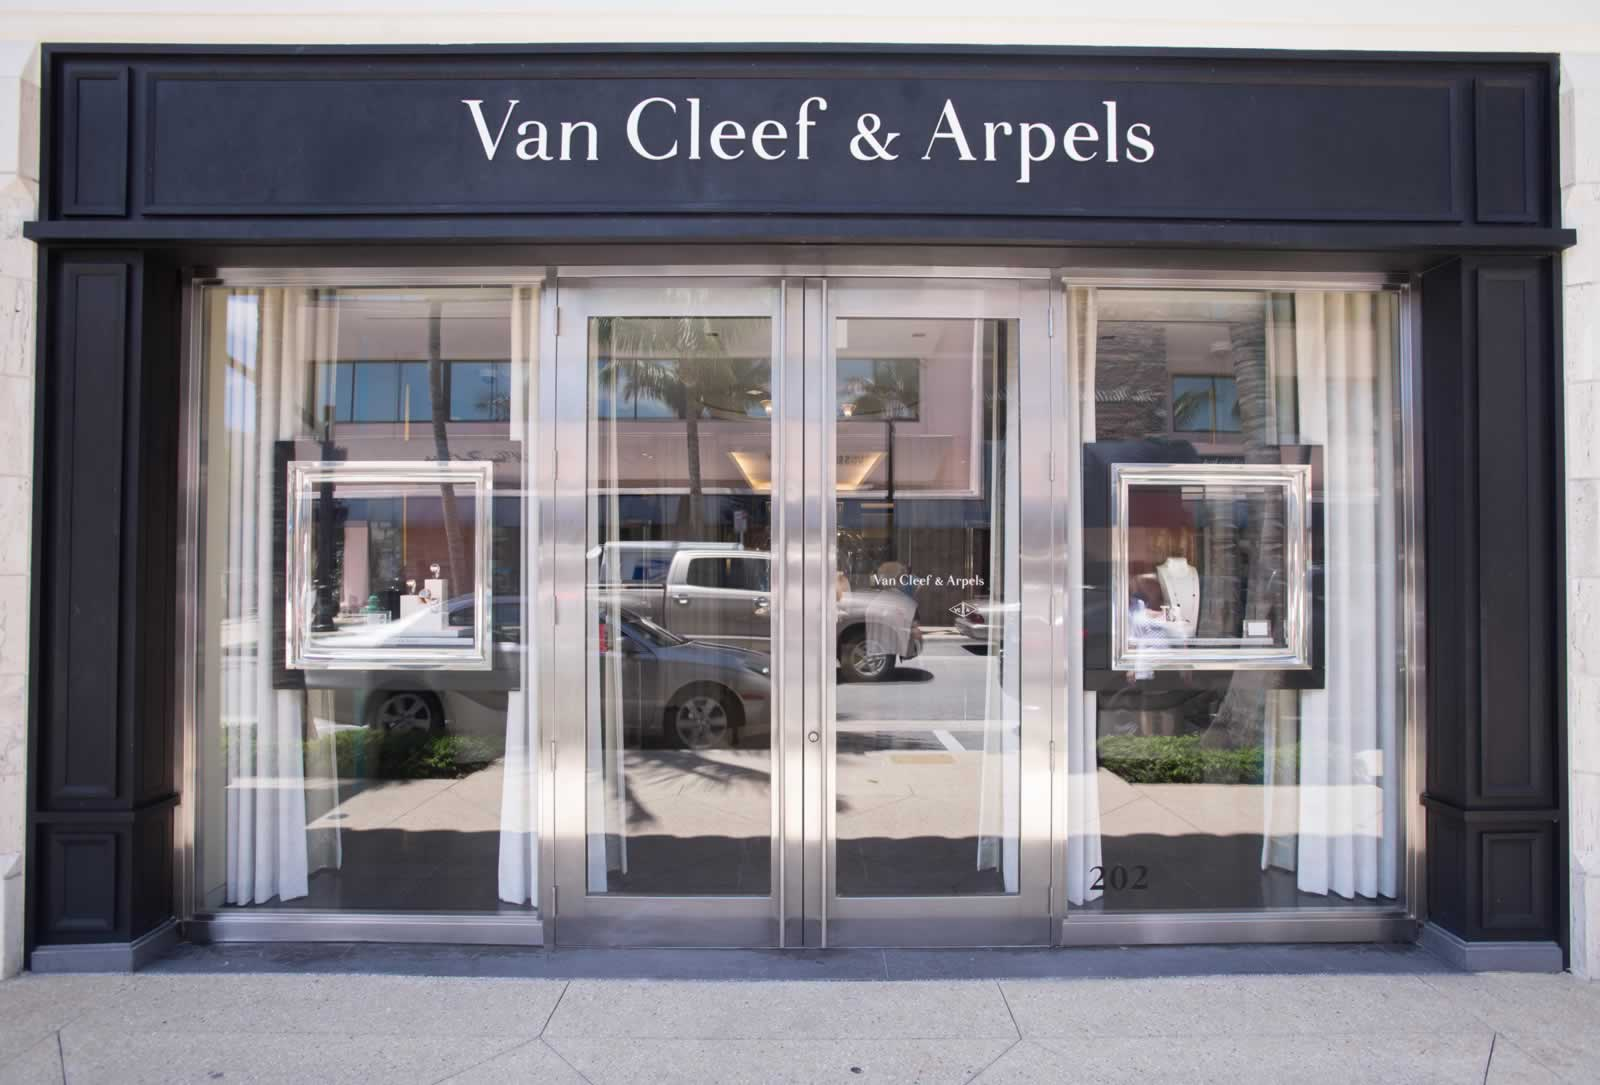 Black frame, white clear logo, tall glass windows and small box displays is what you see from Van Cleef & Arpels.